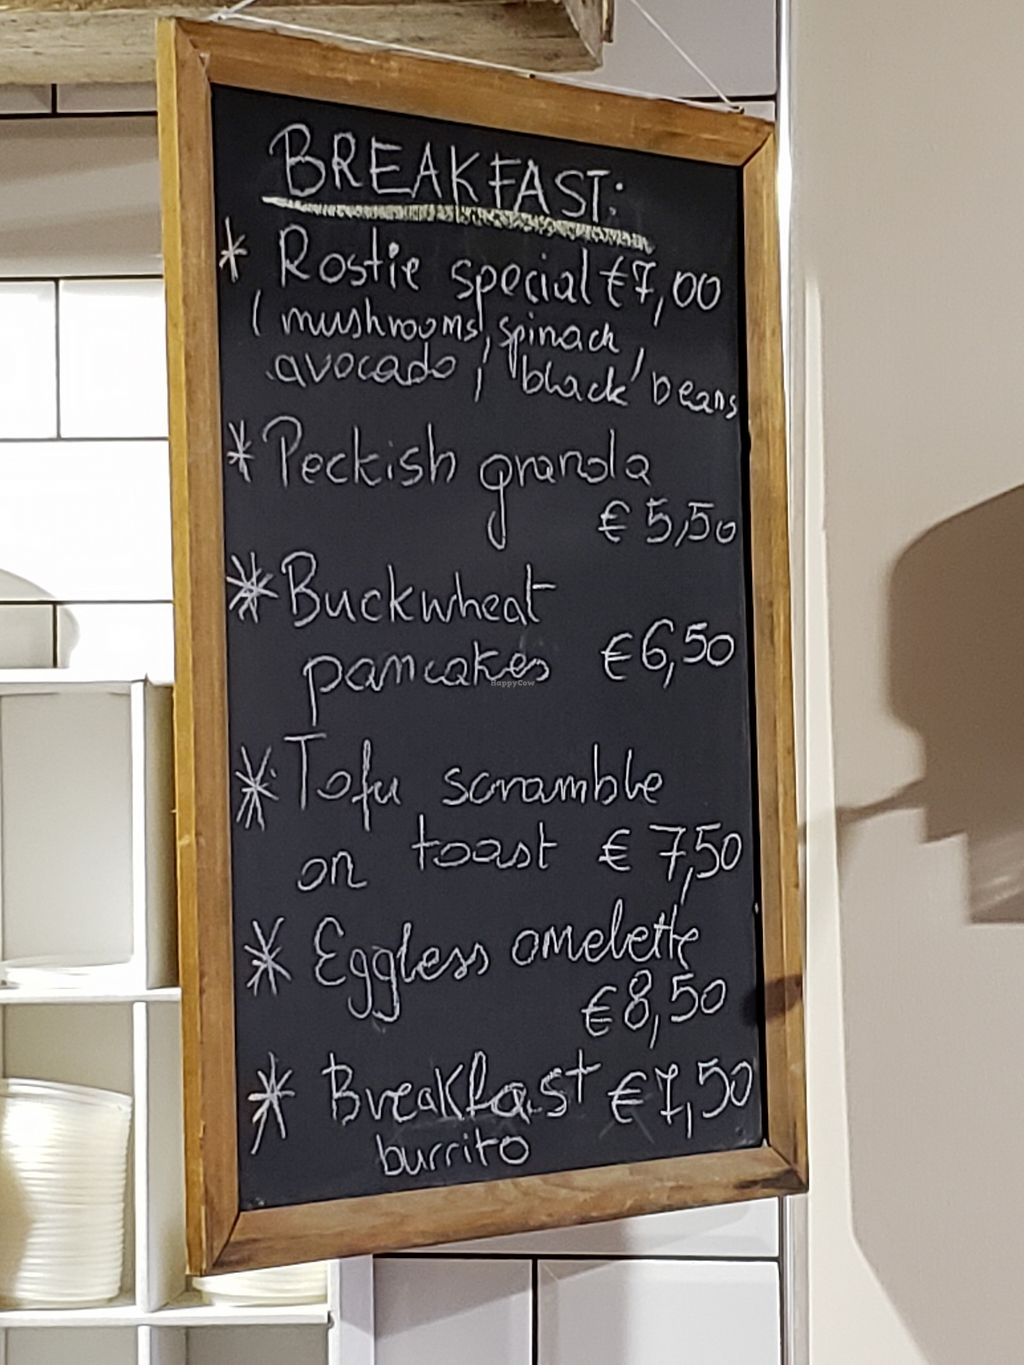 """Photo of Peckish Cafe  by <a href=""""/members/profile/reuvenk"""">reuvenk</a> <br/>Breakfast menu at the Peckish cafe, Ennis, Ireland <br/> April 17, 2018  - <a href='/contact/abuse/image/78253/387080'>Report</a>"""